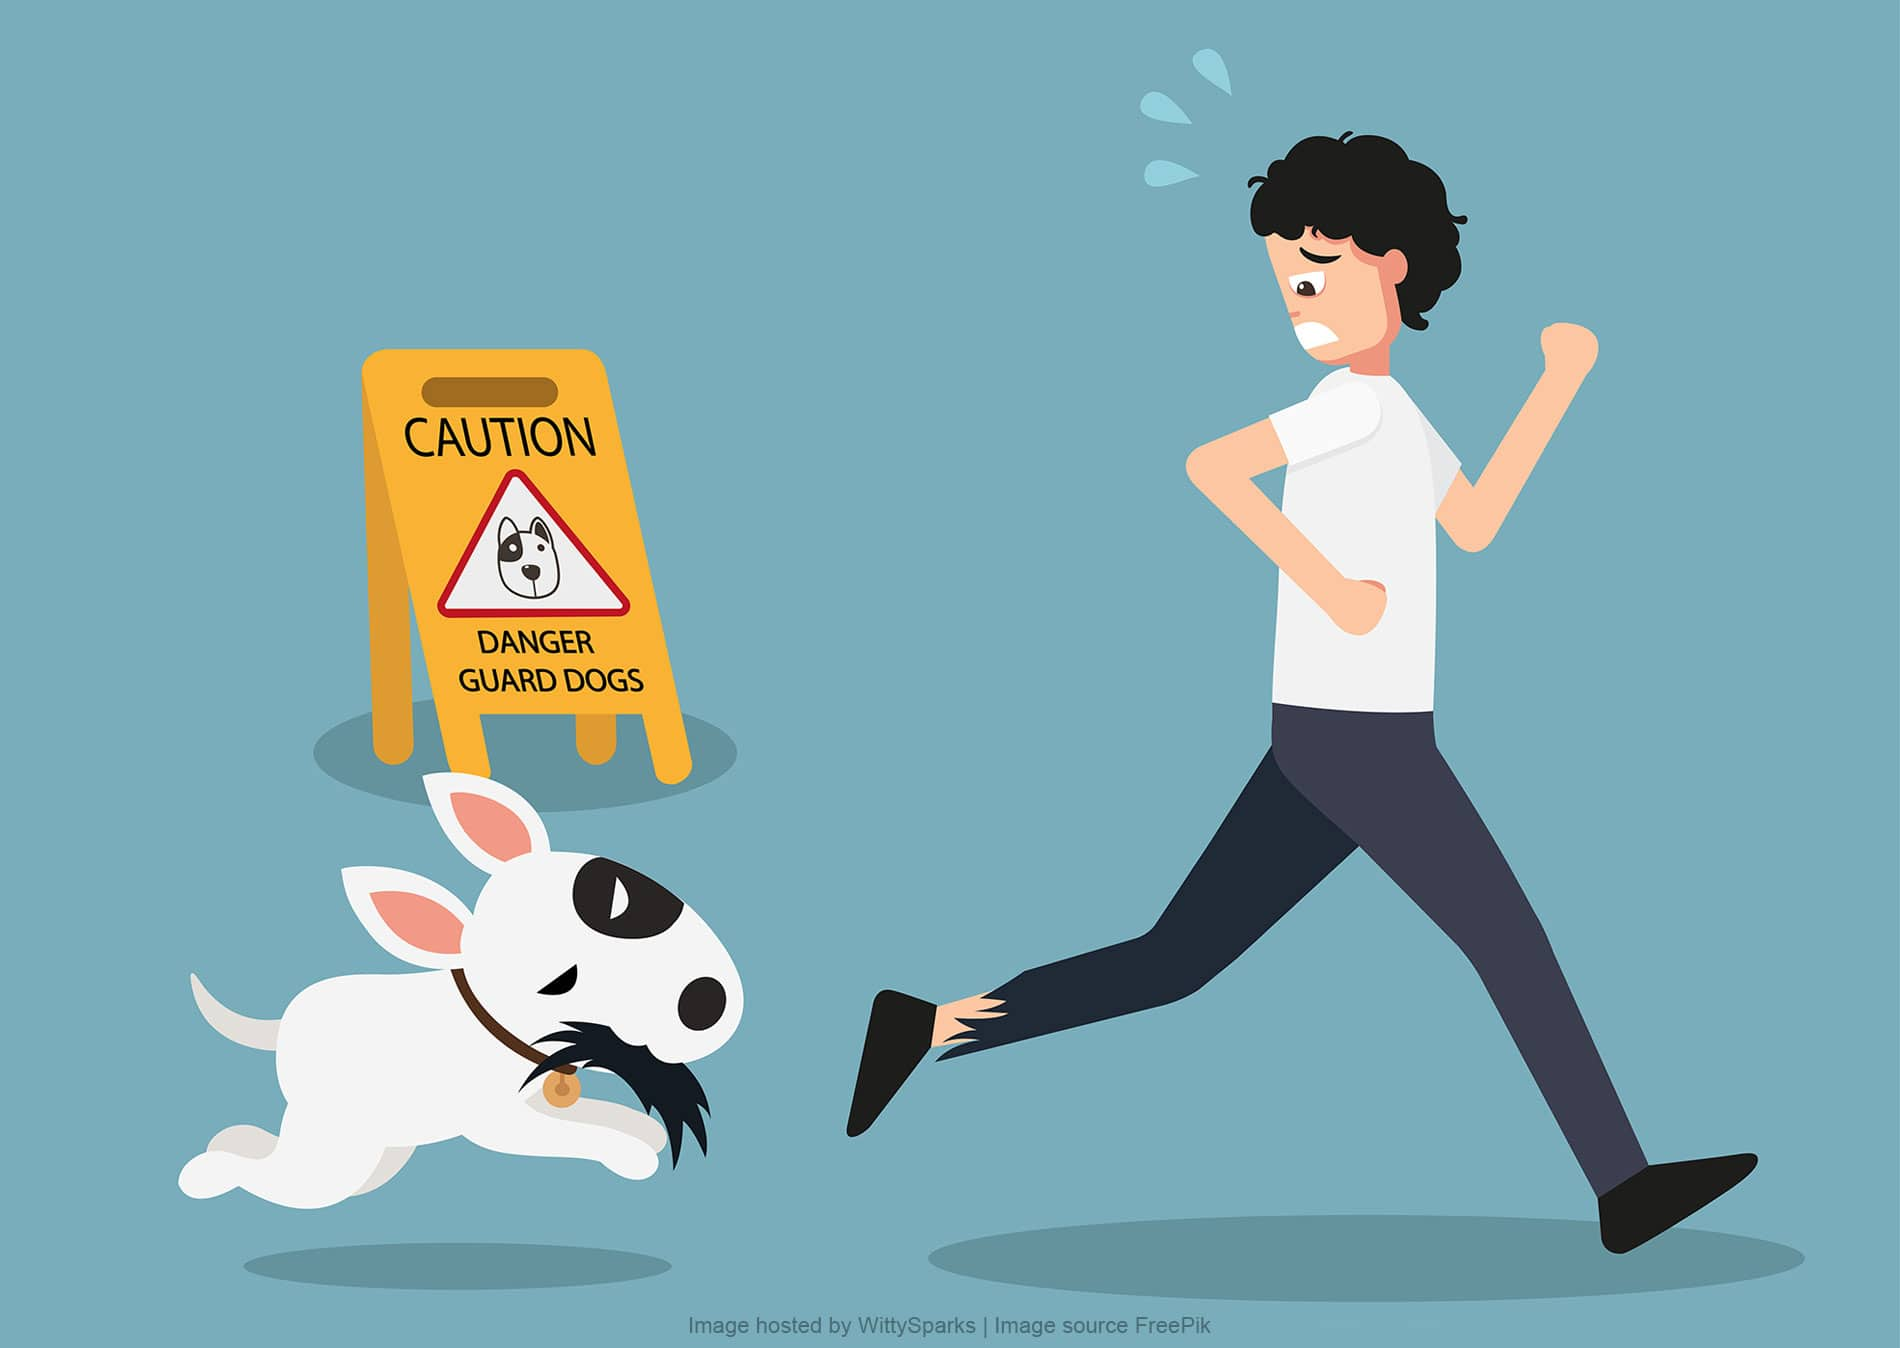 How to avoid a dog attacks